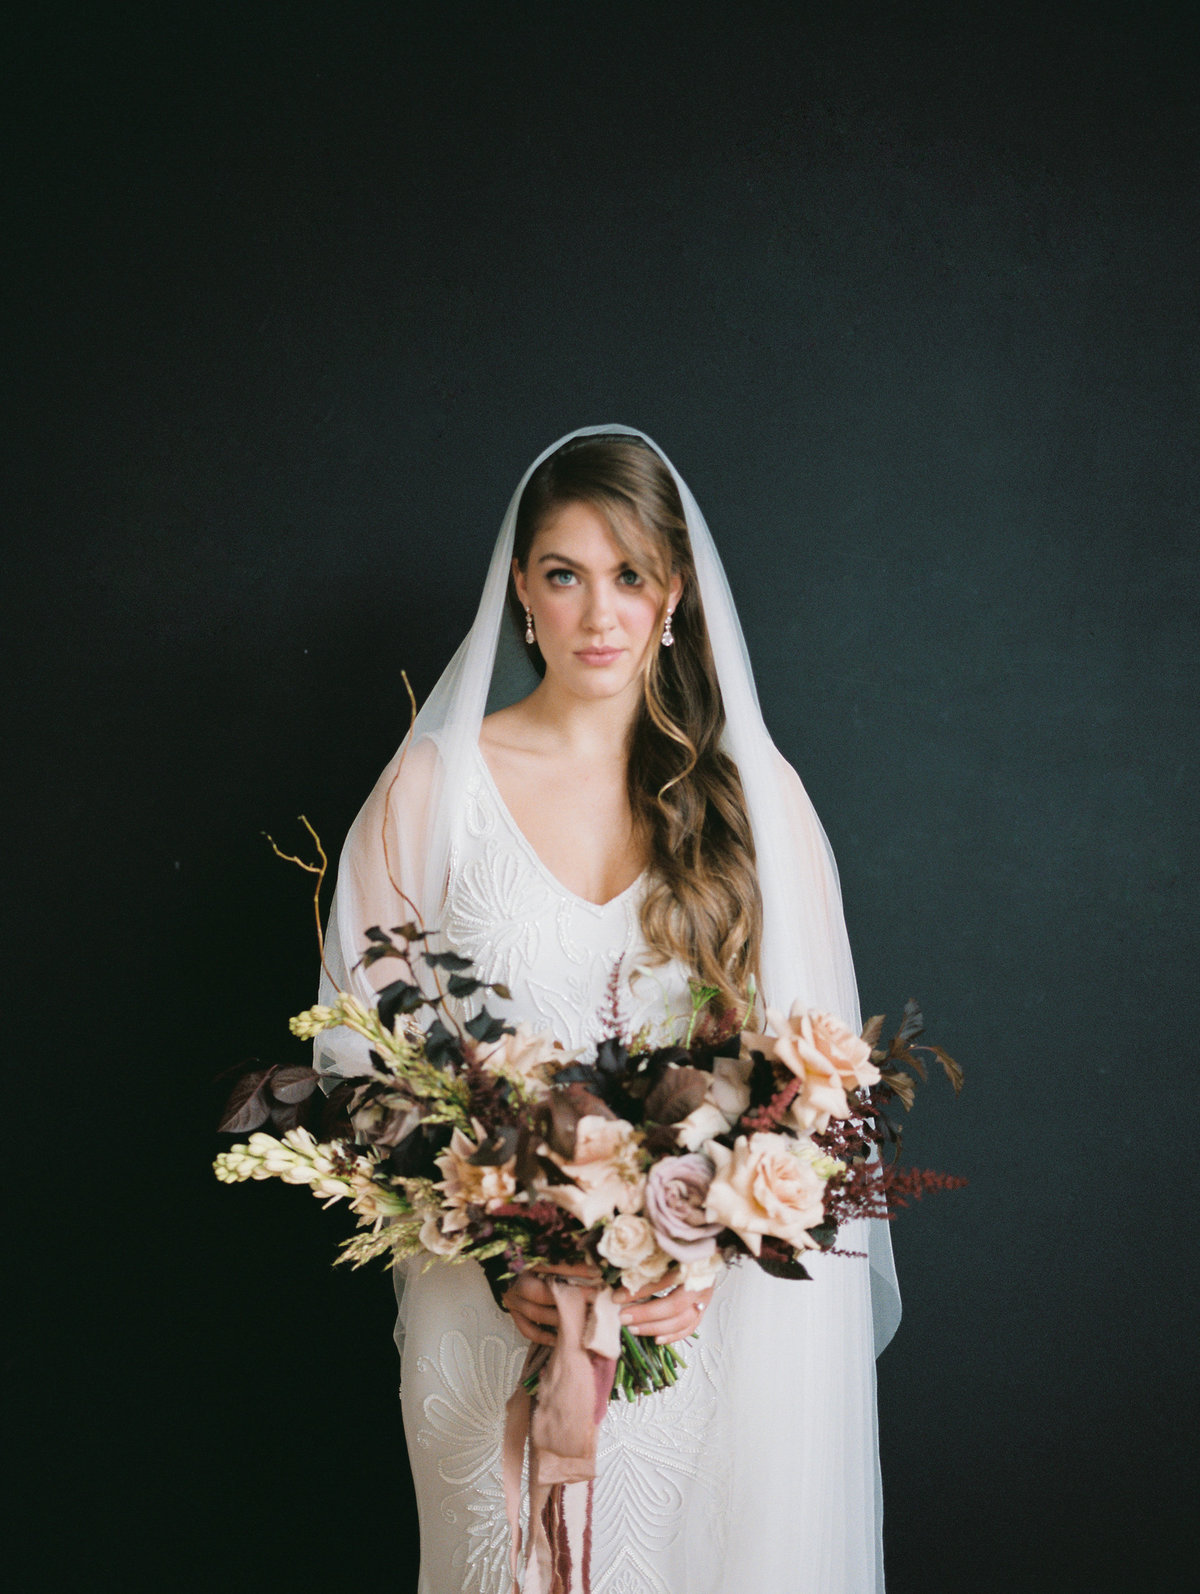 WHEN-SHE-KNEW-PHOTOGRAPHY-STYLED-WEDDING-EDITORIAL-OREGON-47